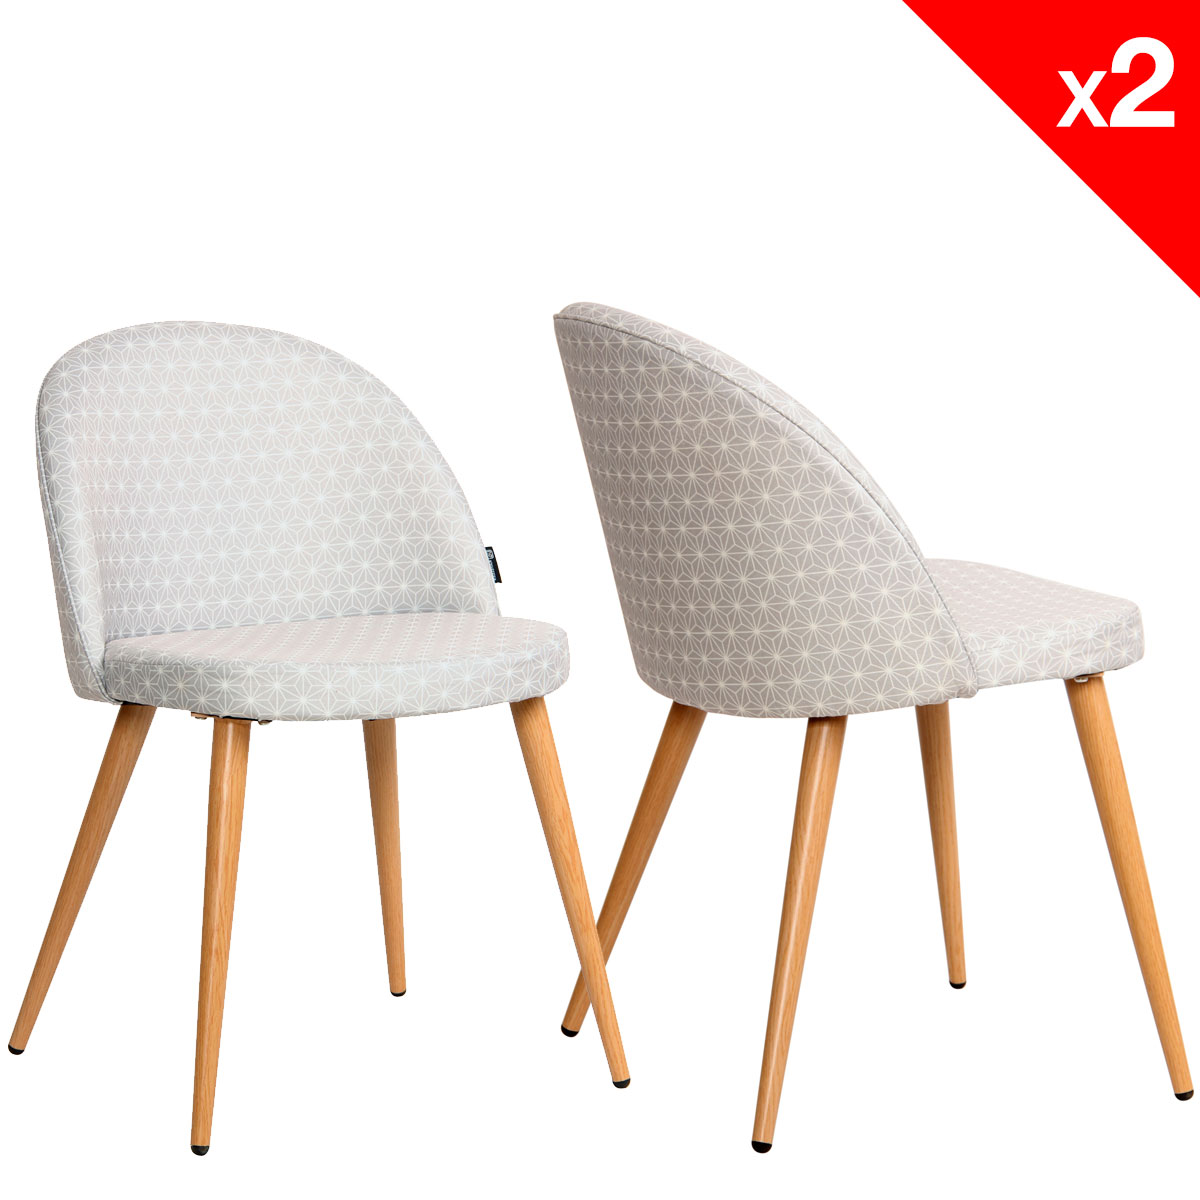 Chaise scandinave vintage tissu toiles lot de 2 giza for Chaise scandinave tissu